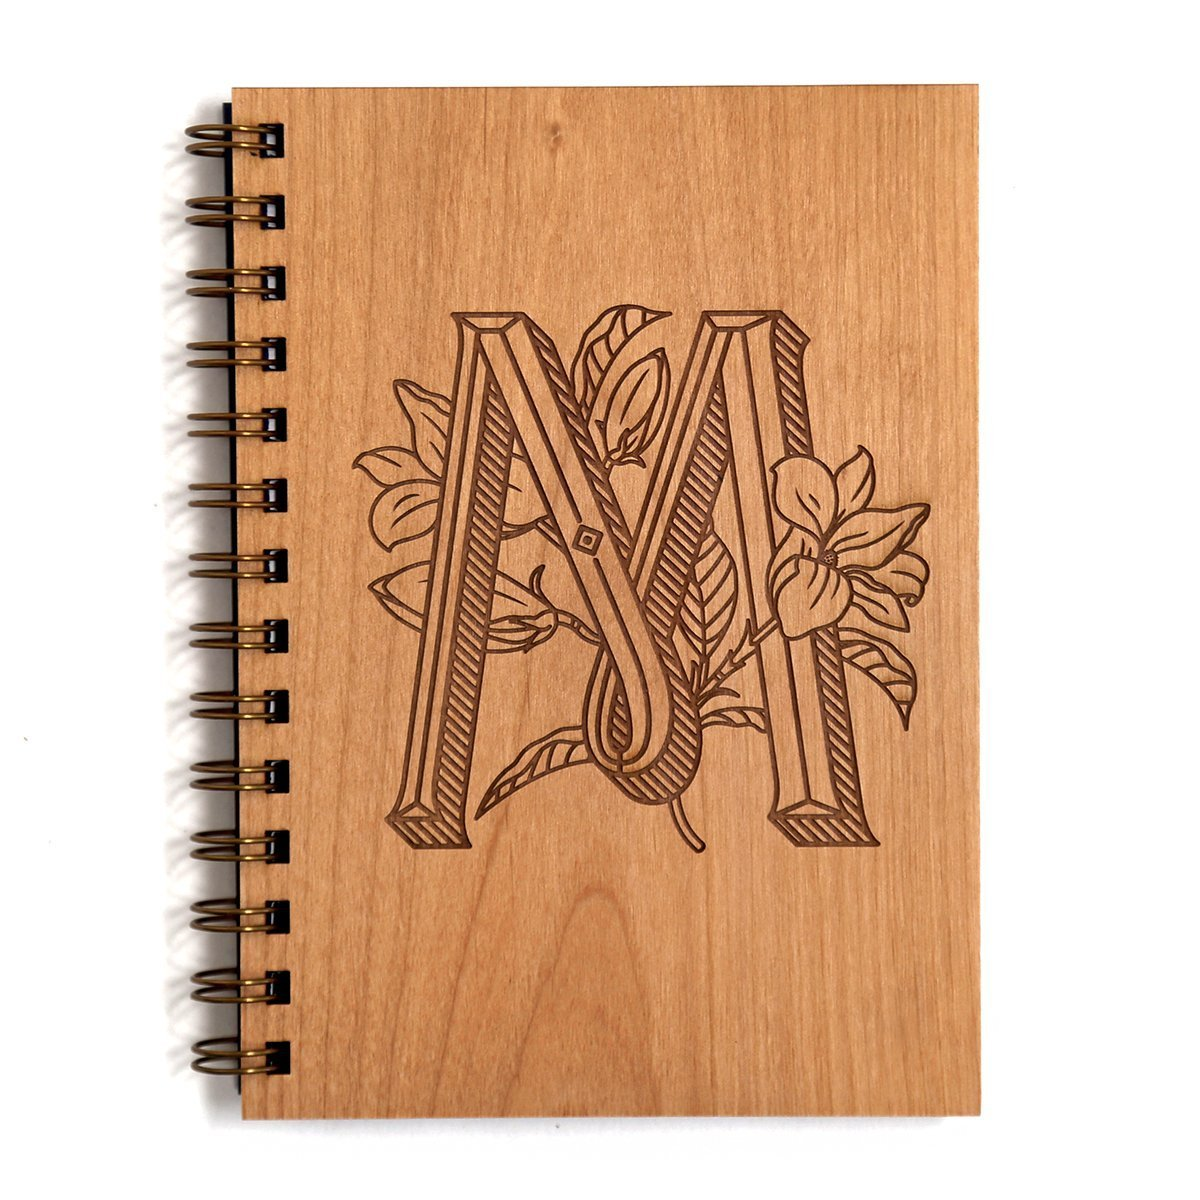 Notebook//Birthday Gift//Gratitude Journal//Mothers Day Gift//Handmade Other Letters Available Floral Monogram M Initial Laser Cut Wood Journal